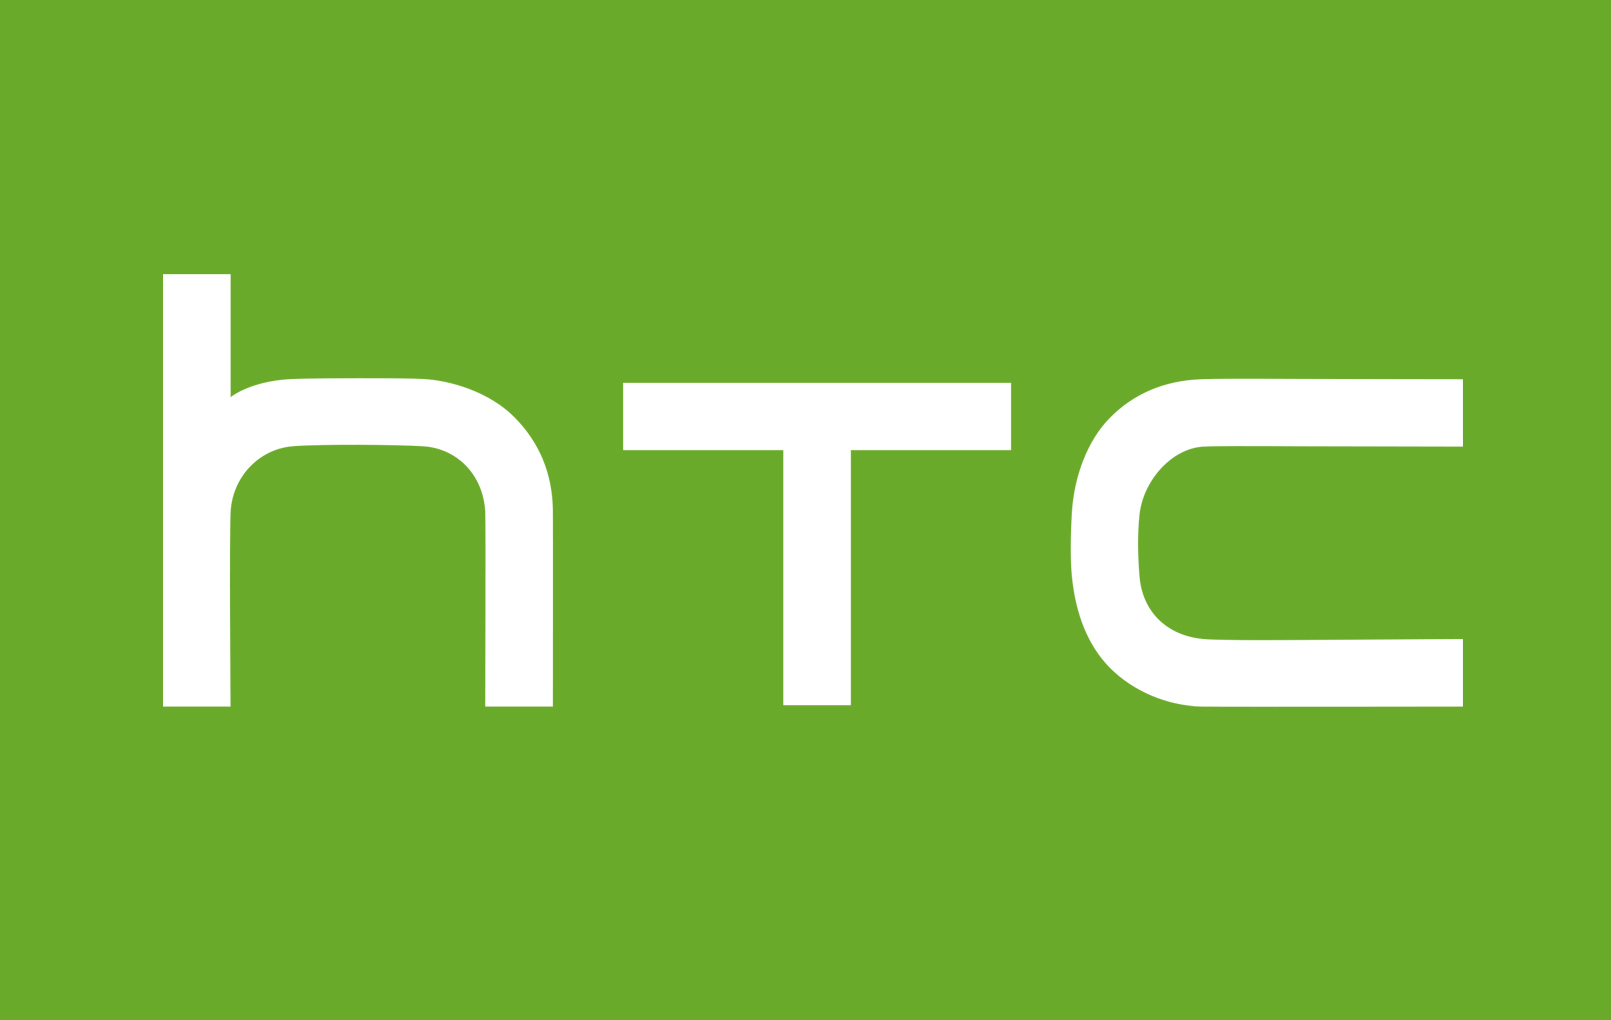 HTC Makes Statement About The Reported Vive VR Headset Sales Decline